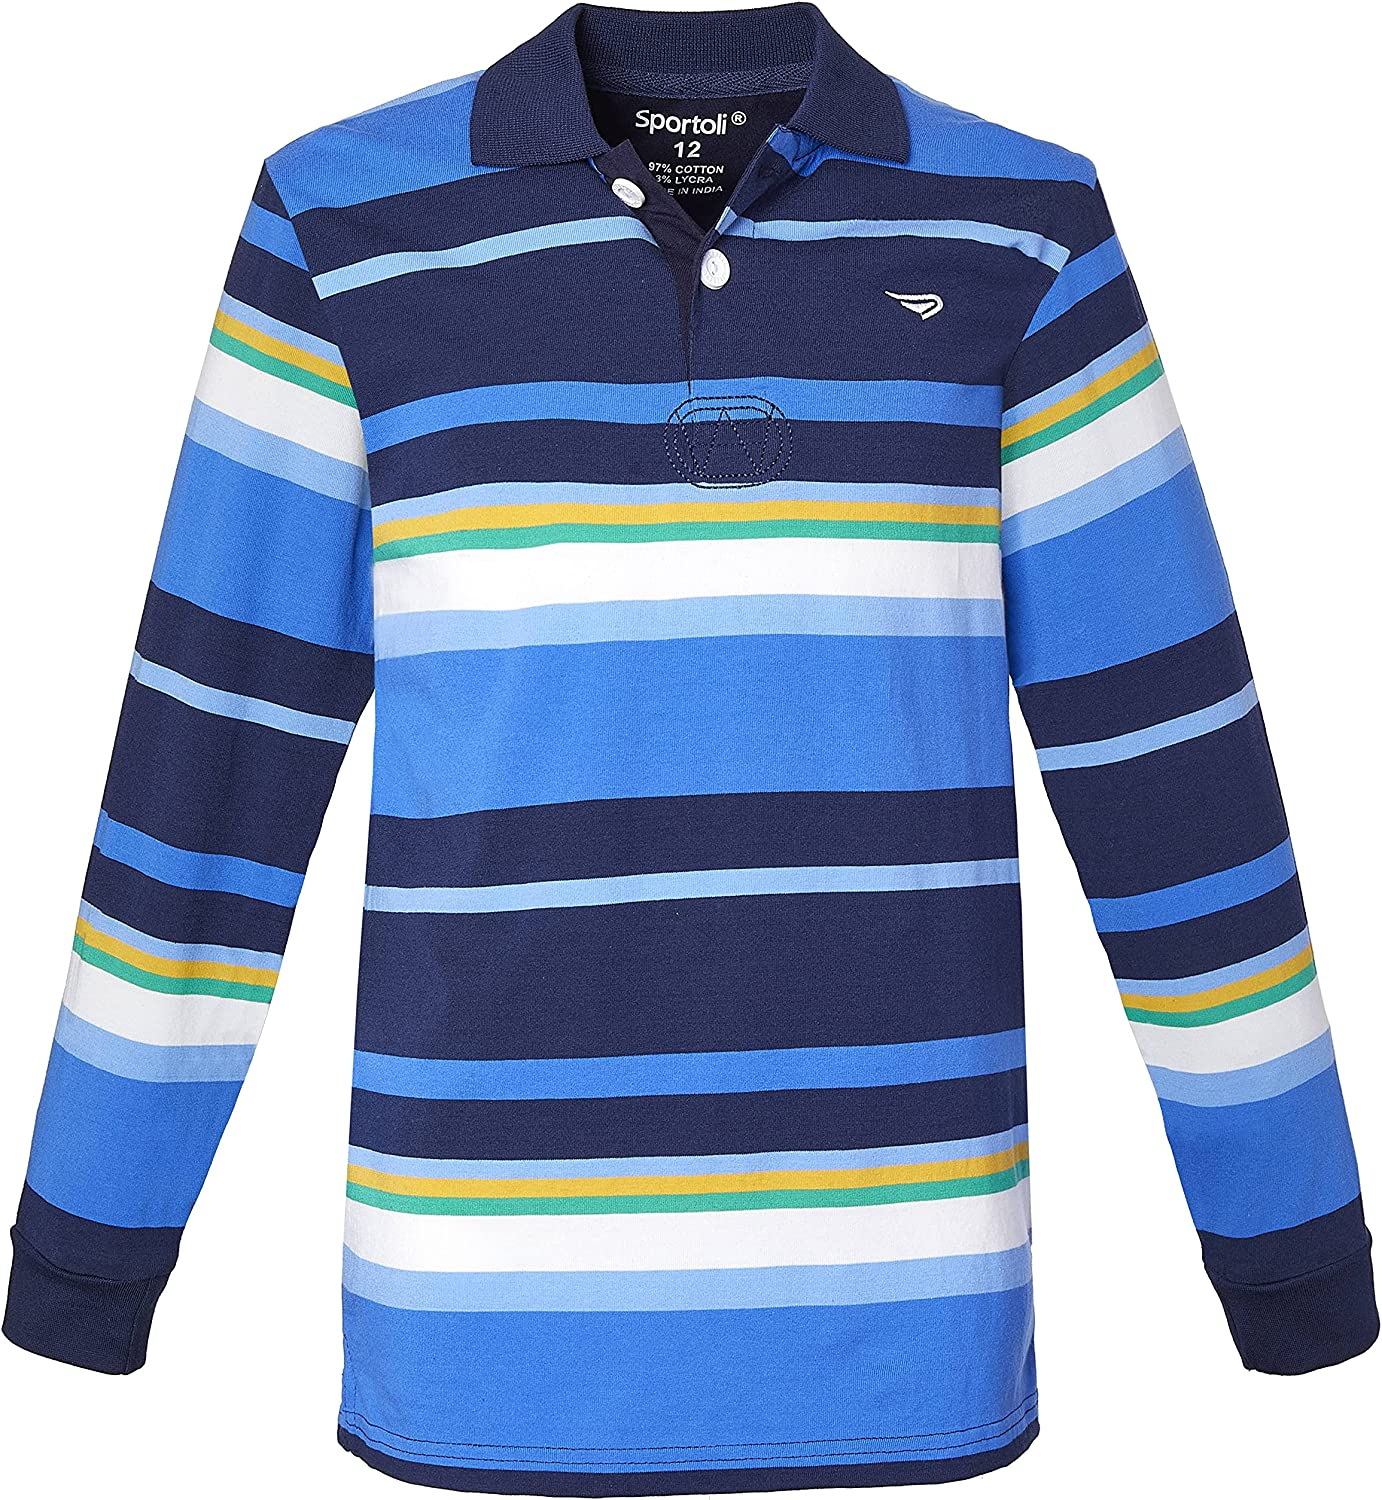 Sportoli Boys Cotton Wide Lowest price challenge Striped Shirt Polo Sleeve Rugby Long Limited time for free shipping